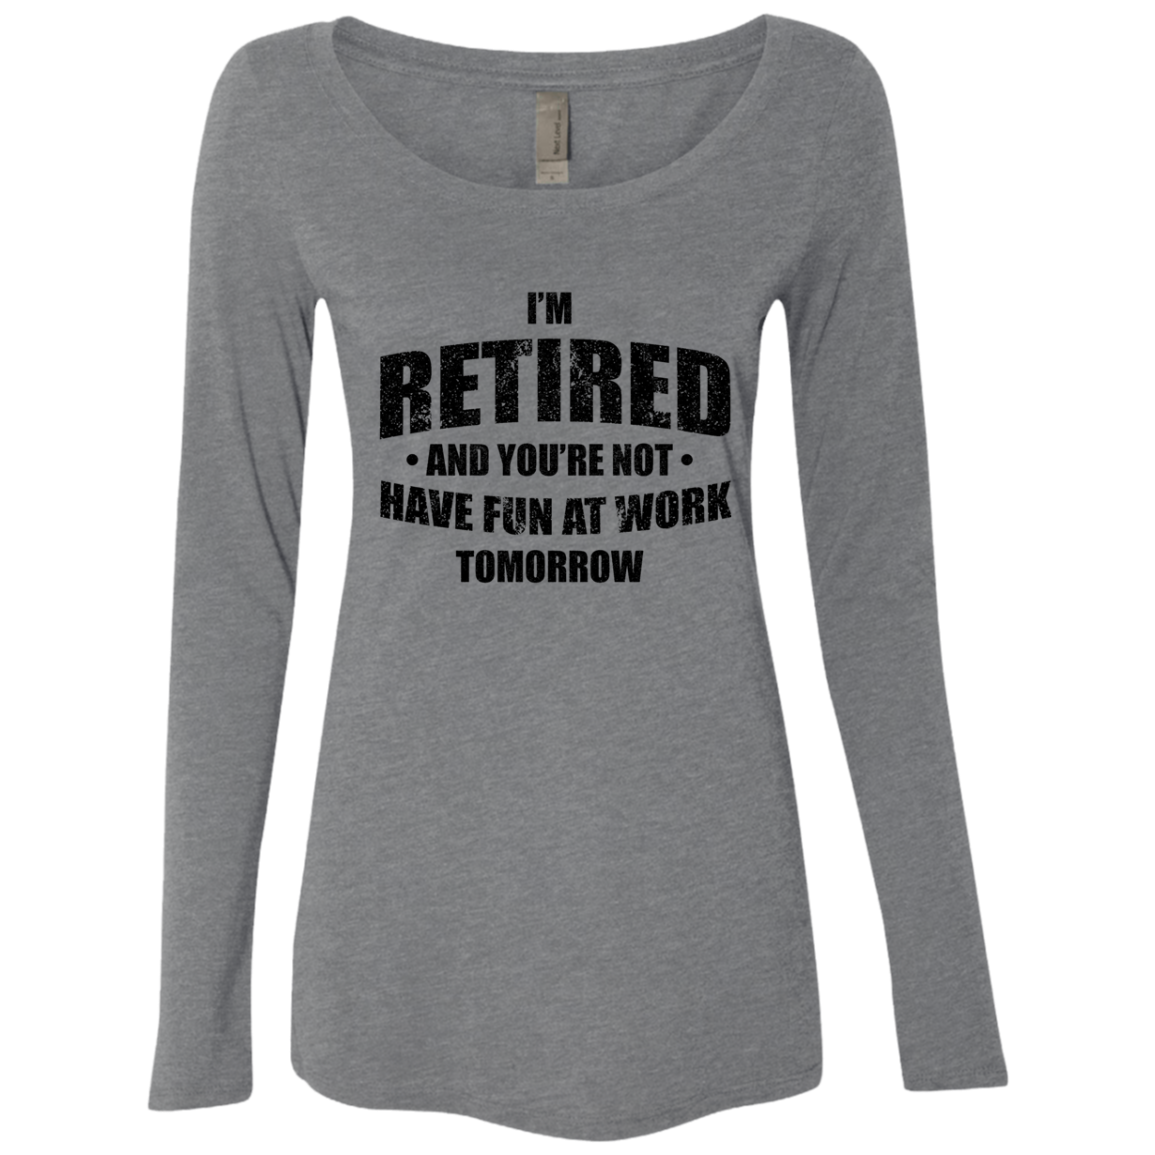 I'm Retired And You're Not Have Fun At Work Tomorrow Women's Long Sleeve Tee